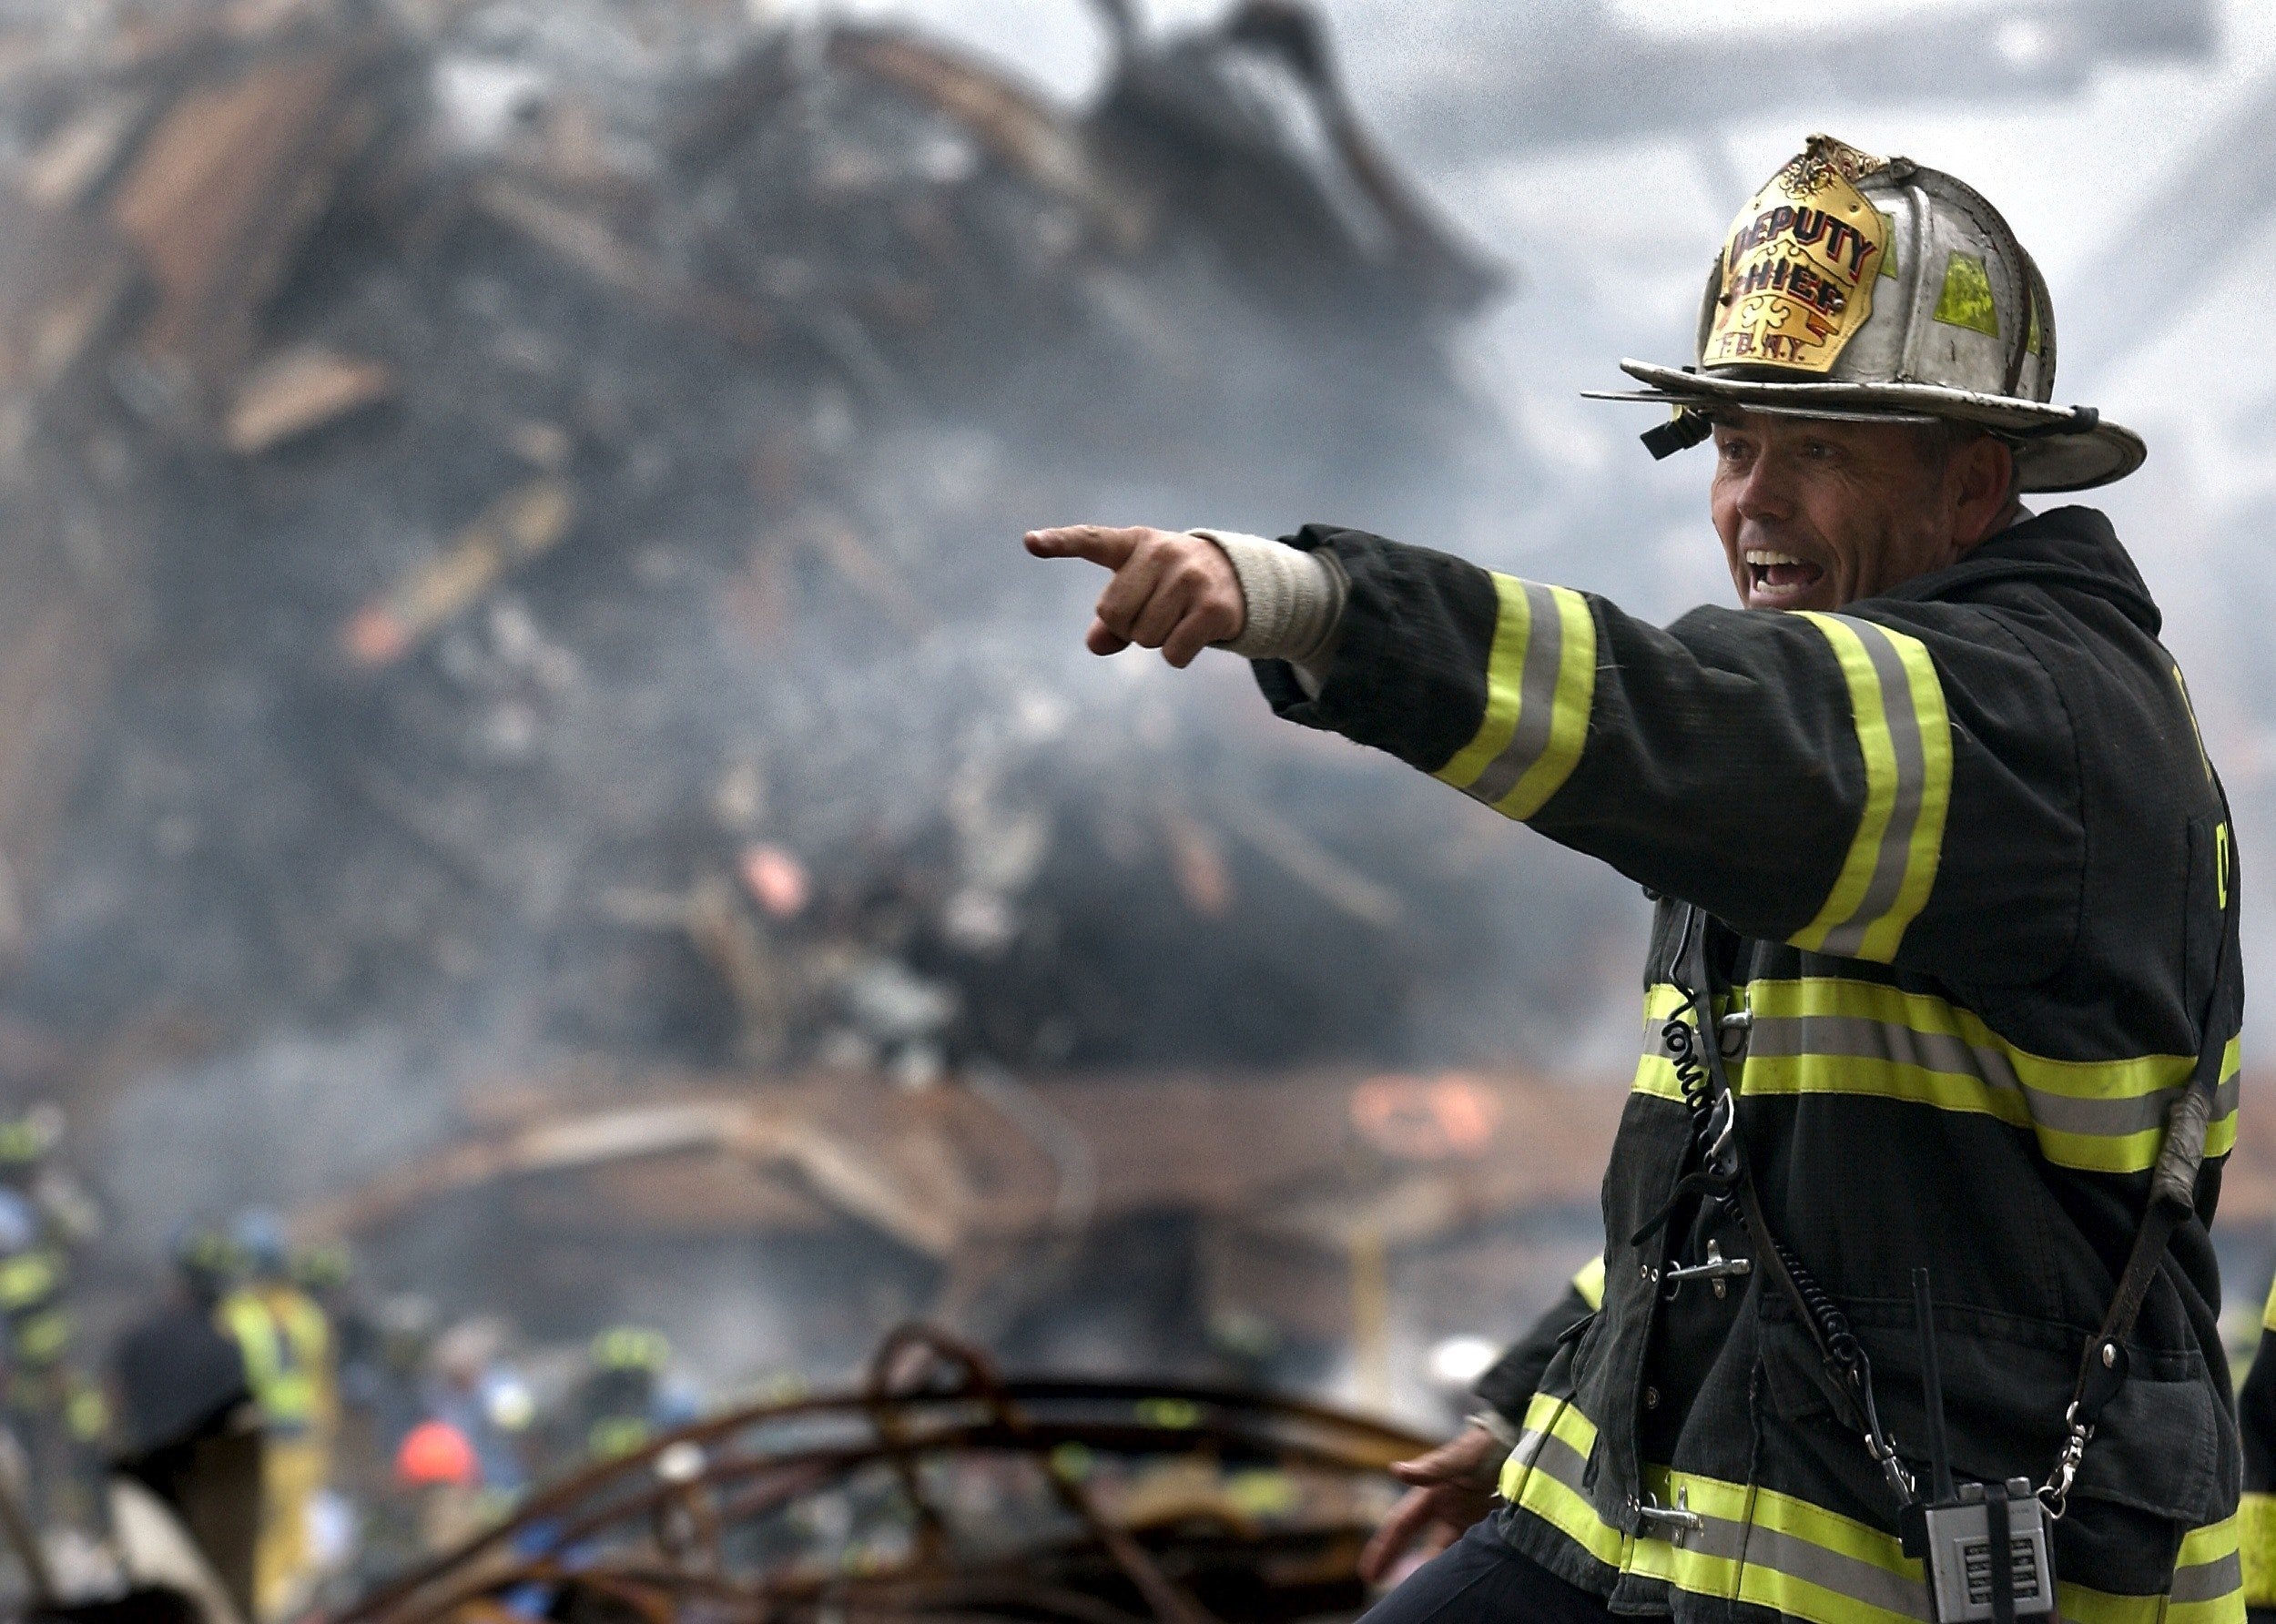 Pictured - A firefighter wearing a black and yellow uniform pointing   Source: Pexels